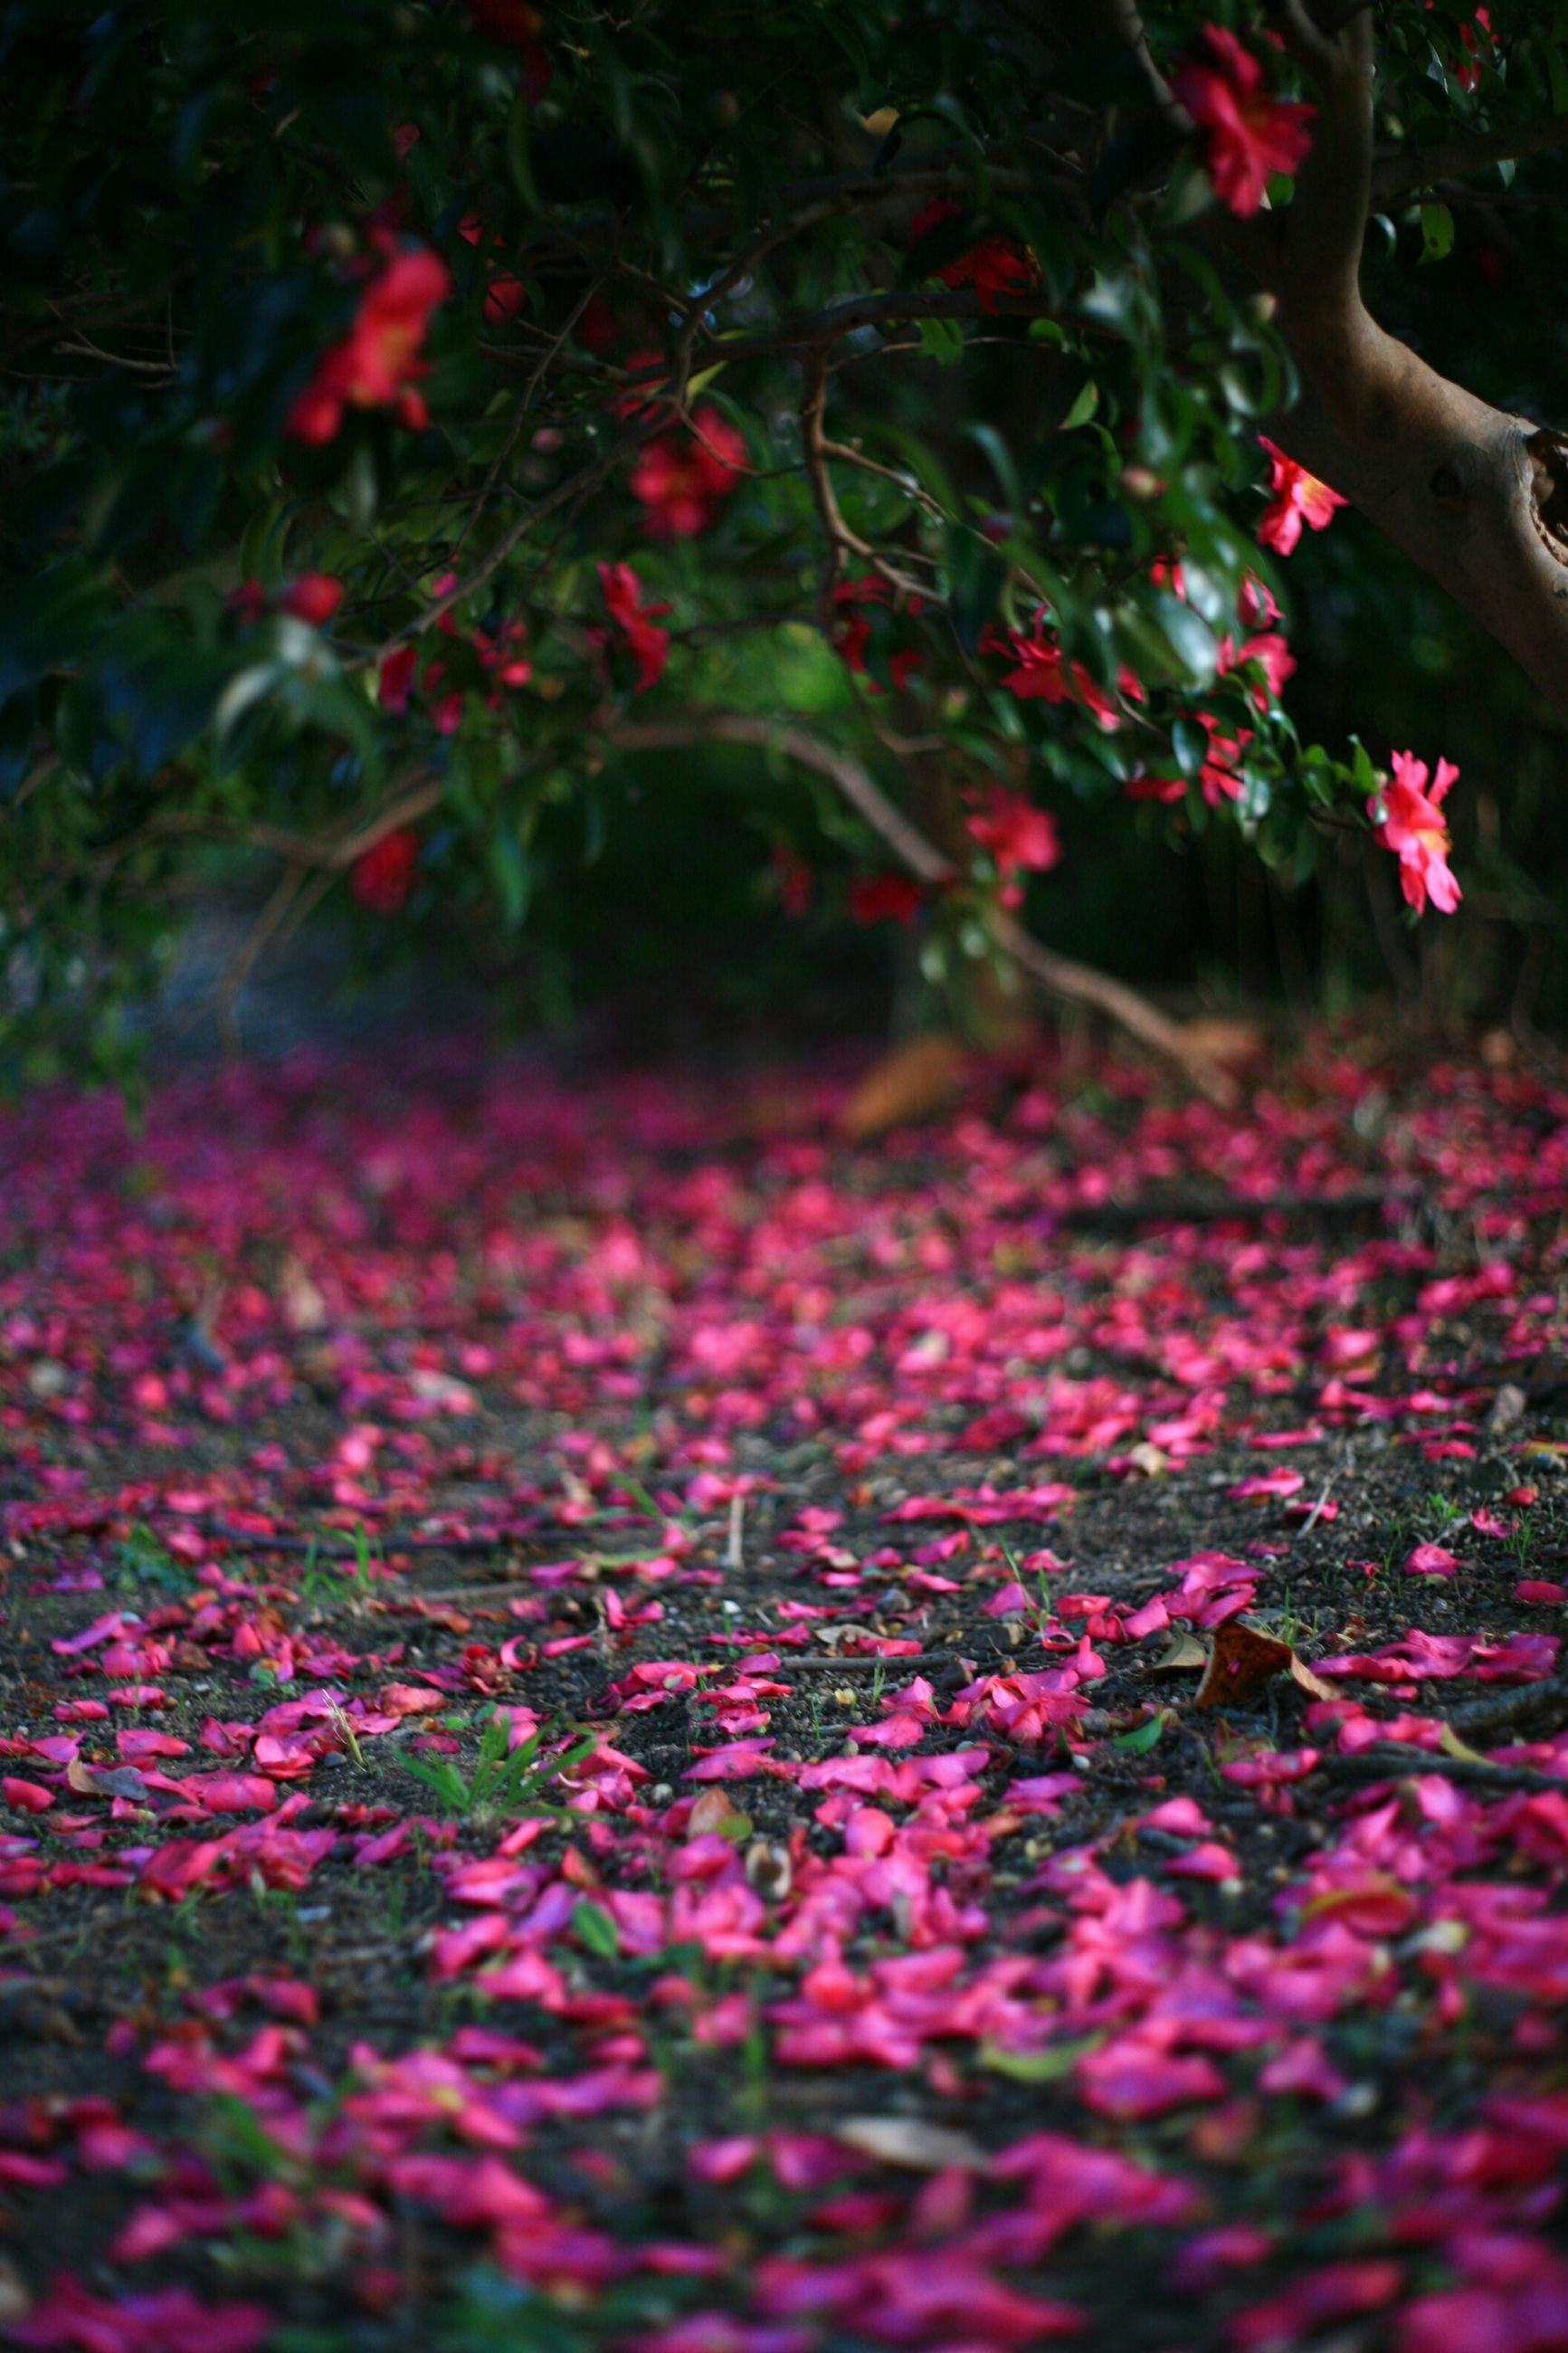 flower, growth, nature, pink color, selective focus, beauty in nature, plant, leaf, freshness, red, tree, autumn, season, tranquility, fragility, park - man made space, field, change, outdoors, fallen